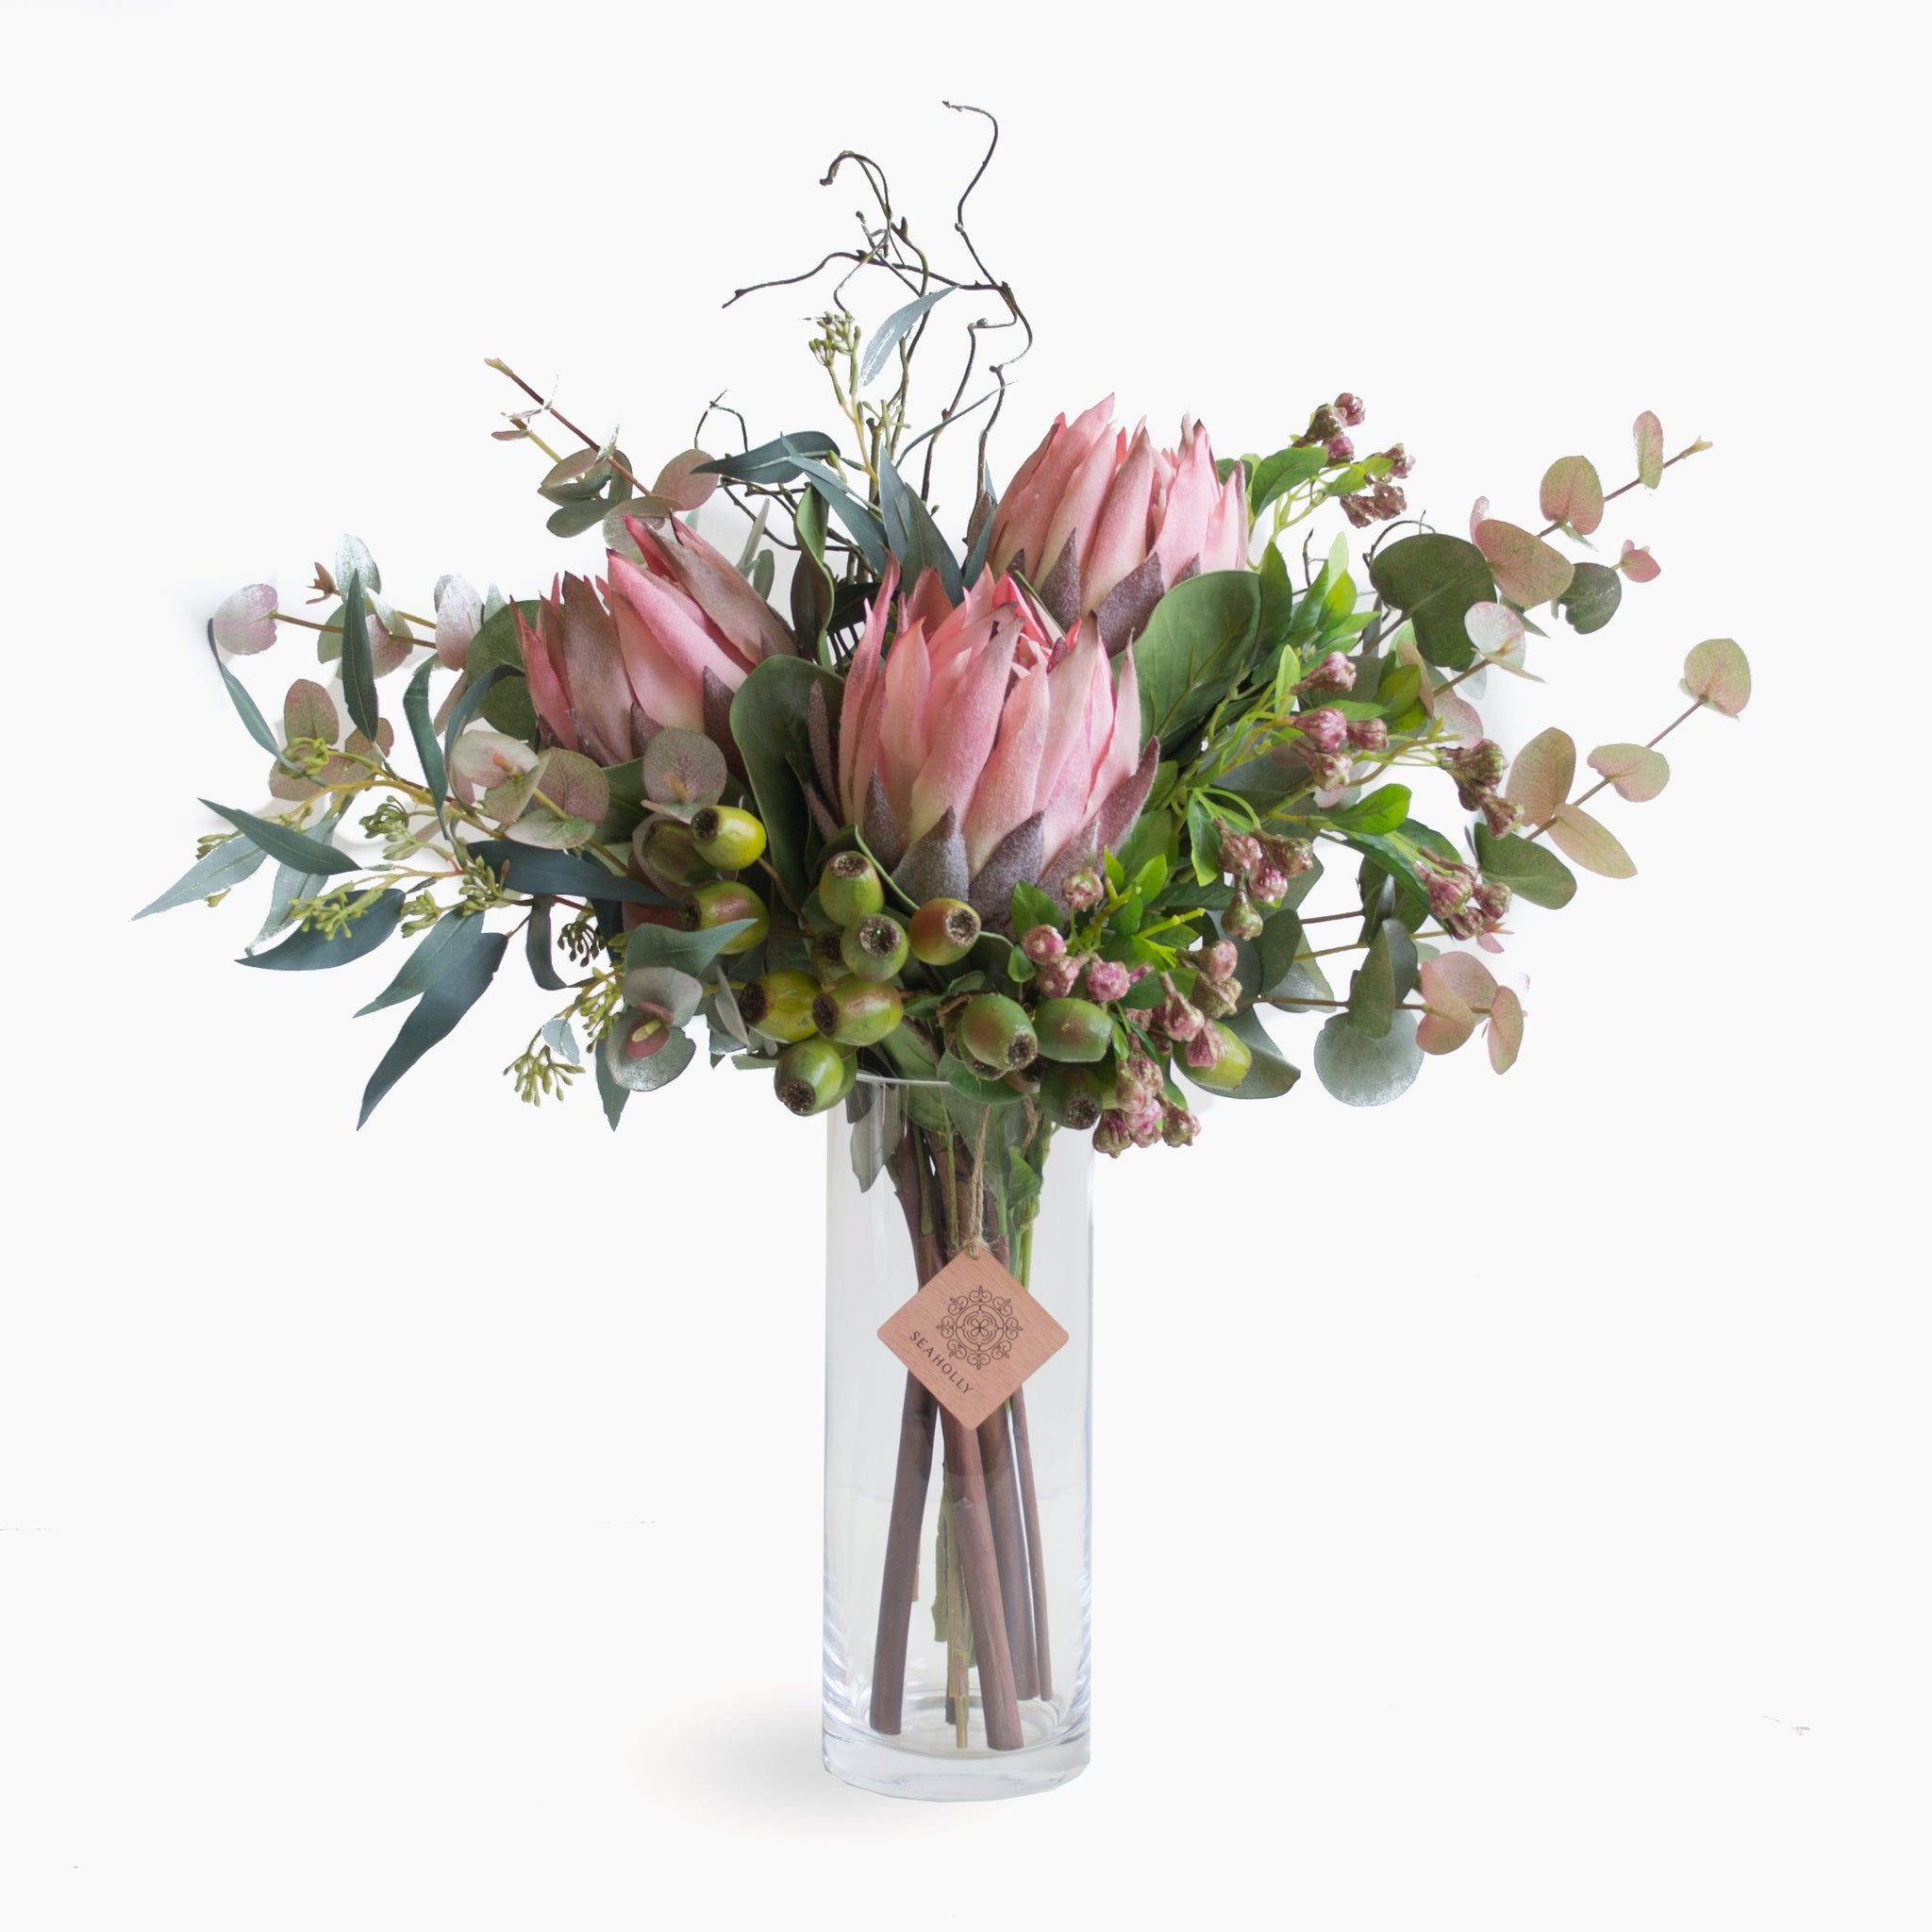 Pink protea, eucalyptus pods, gum nuts, curly twig and mixed foliage